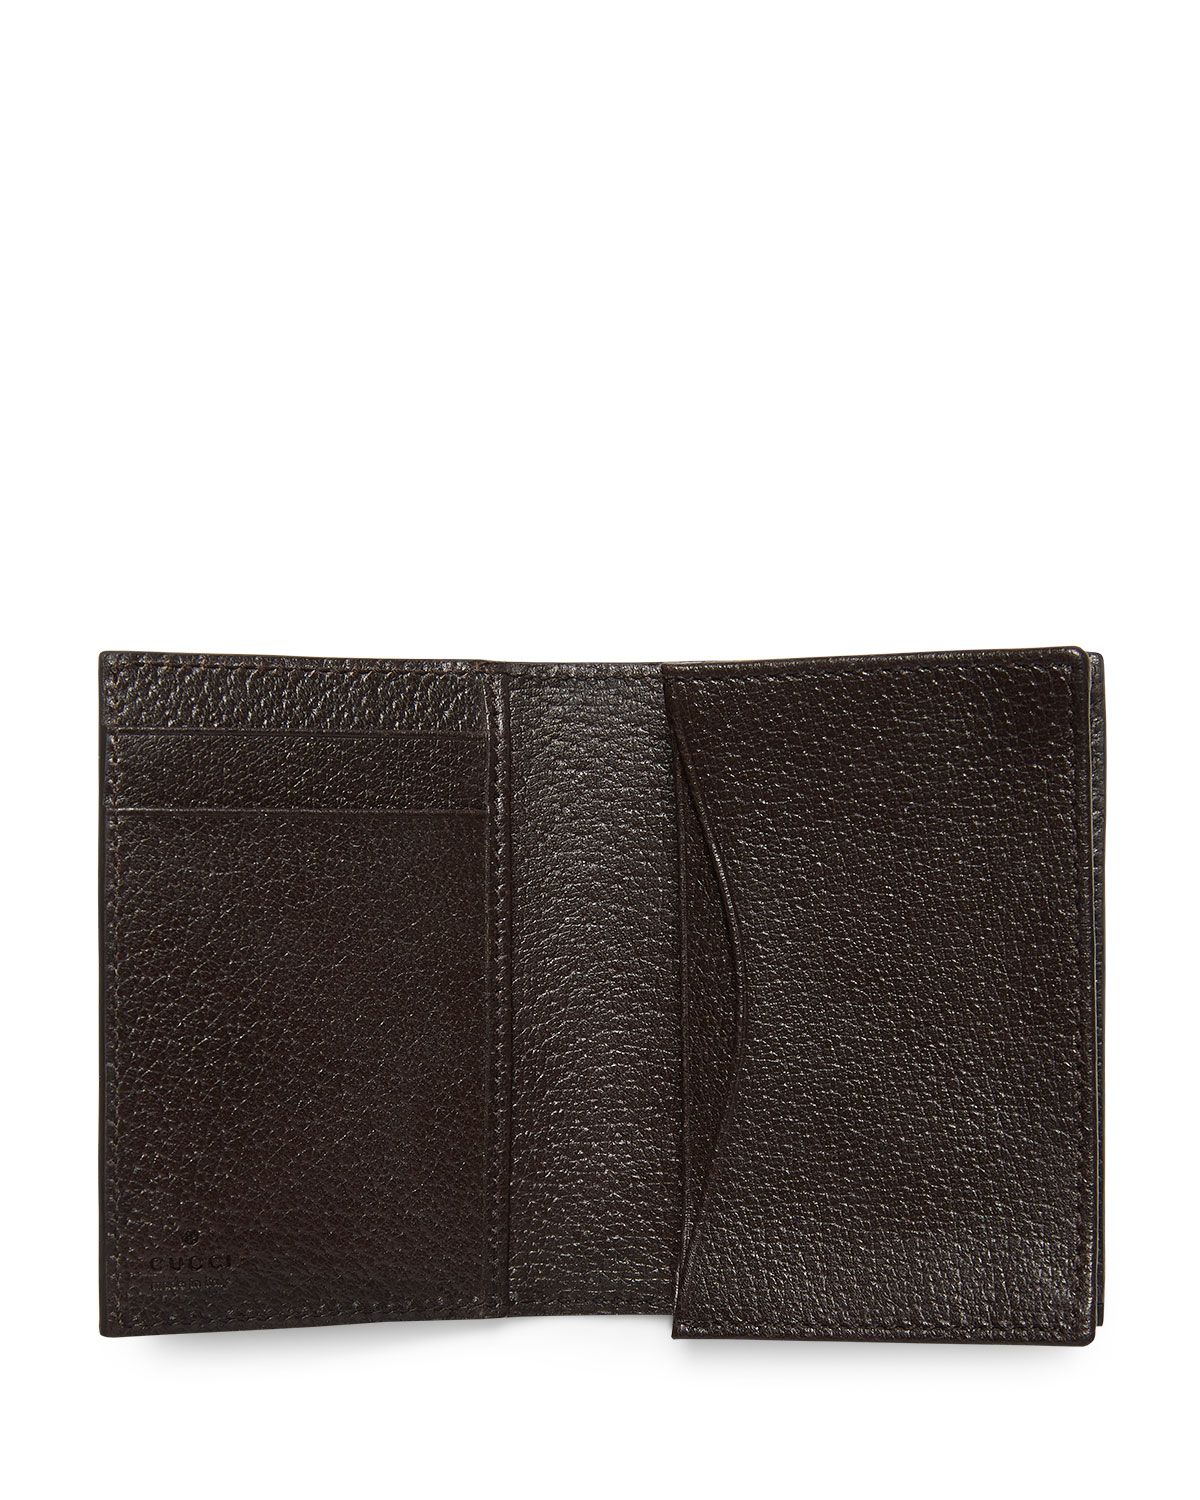 Gucci GG Marmont Leather Fold-Over Card Case | Neiman Marcus